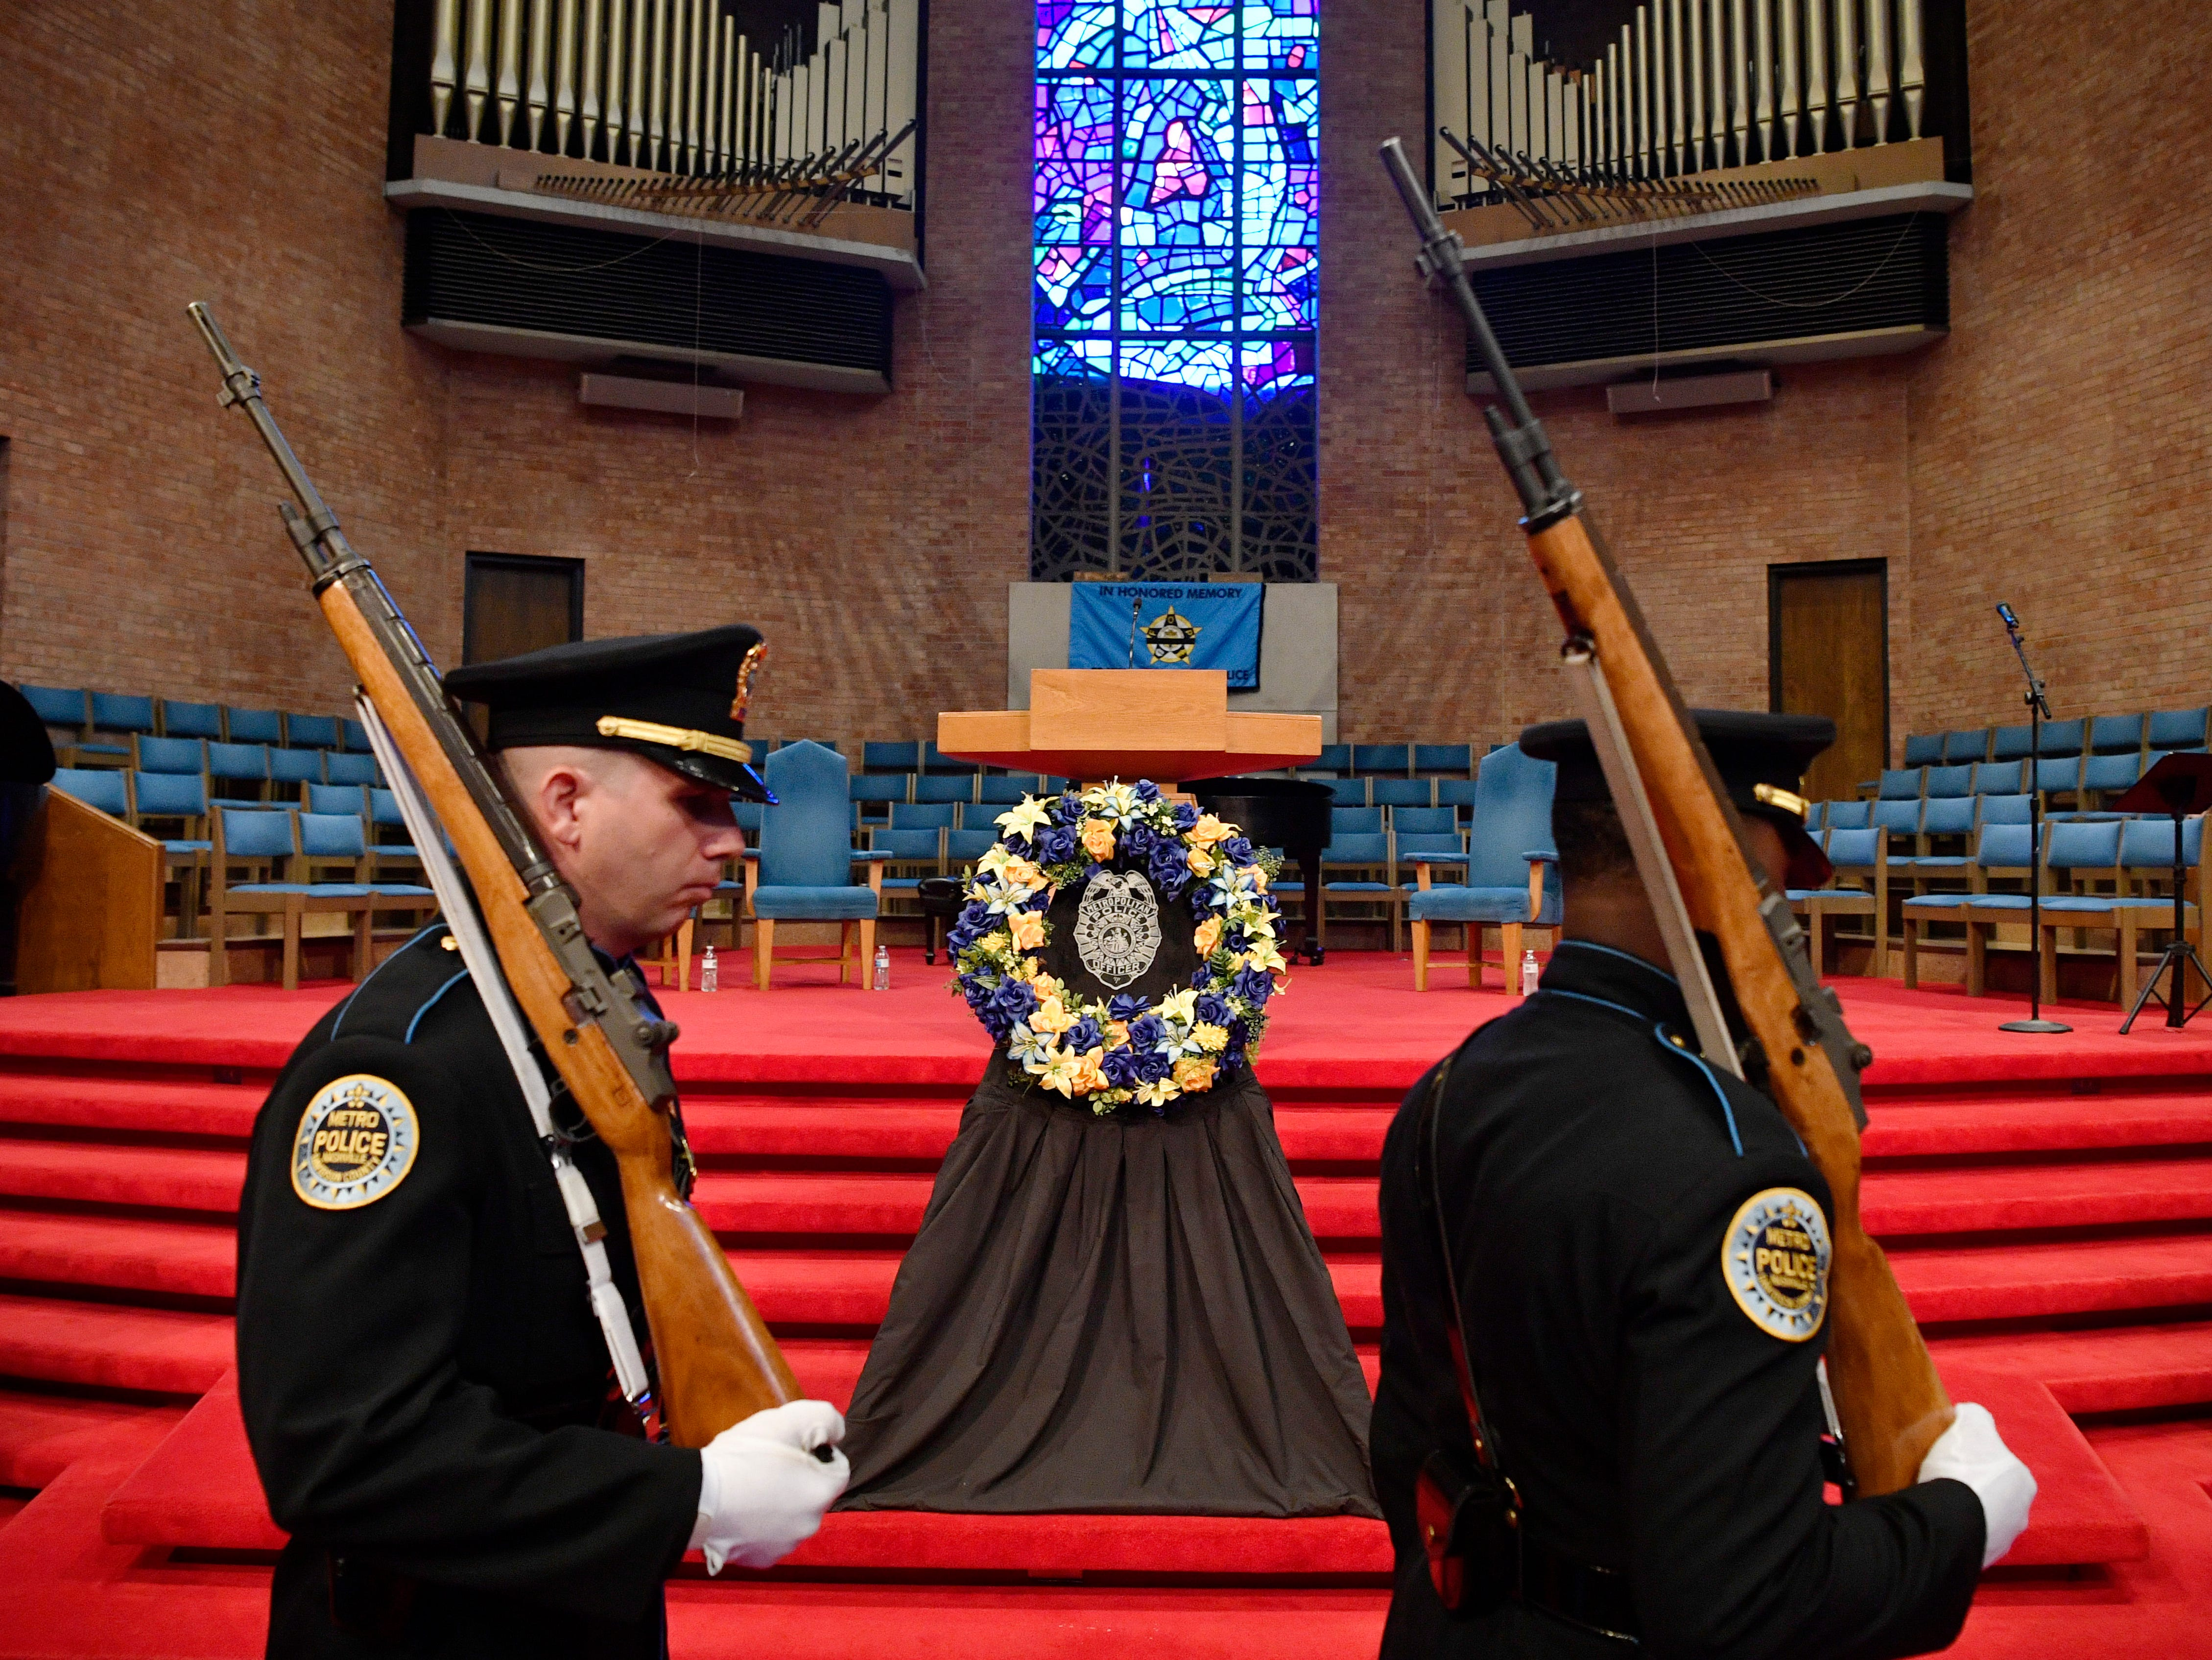 Honor Guard open the service at the annual memorial service honoring Nashville's police officers who have died in service to the city Thursday, May 9, 2019, in Nashville, Tenn.